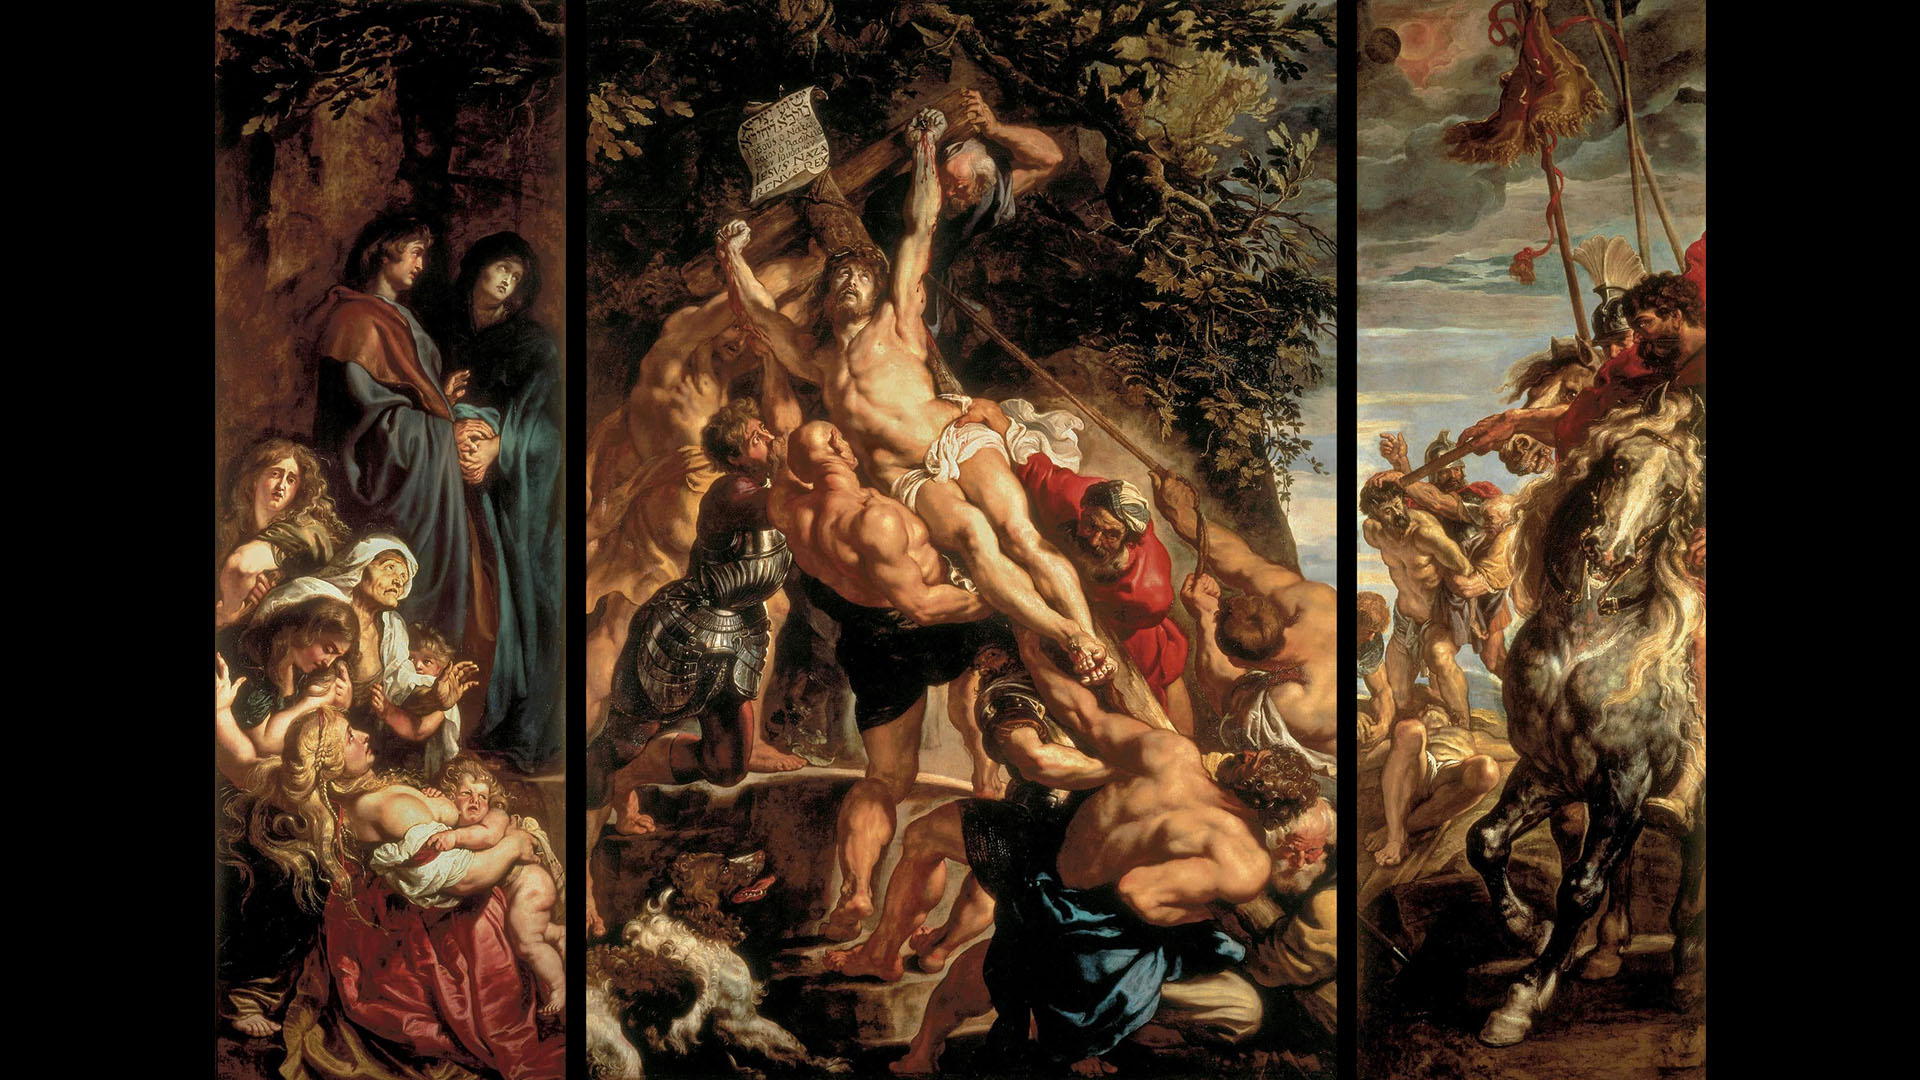 Peter Paul Rubens - The Elevation of the Cross 1920x1080 2